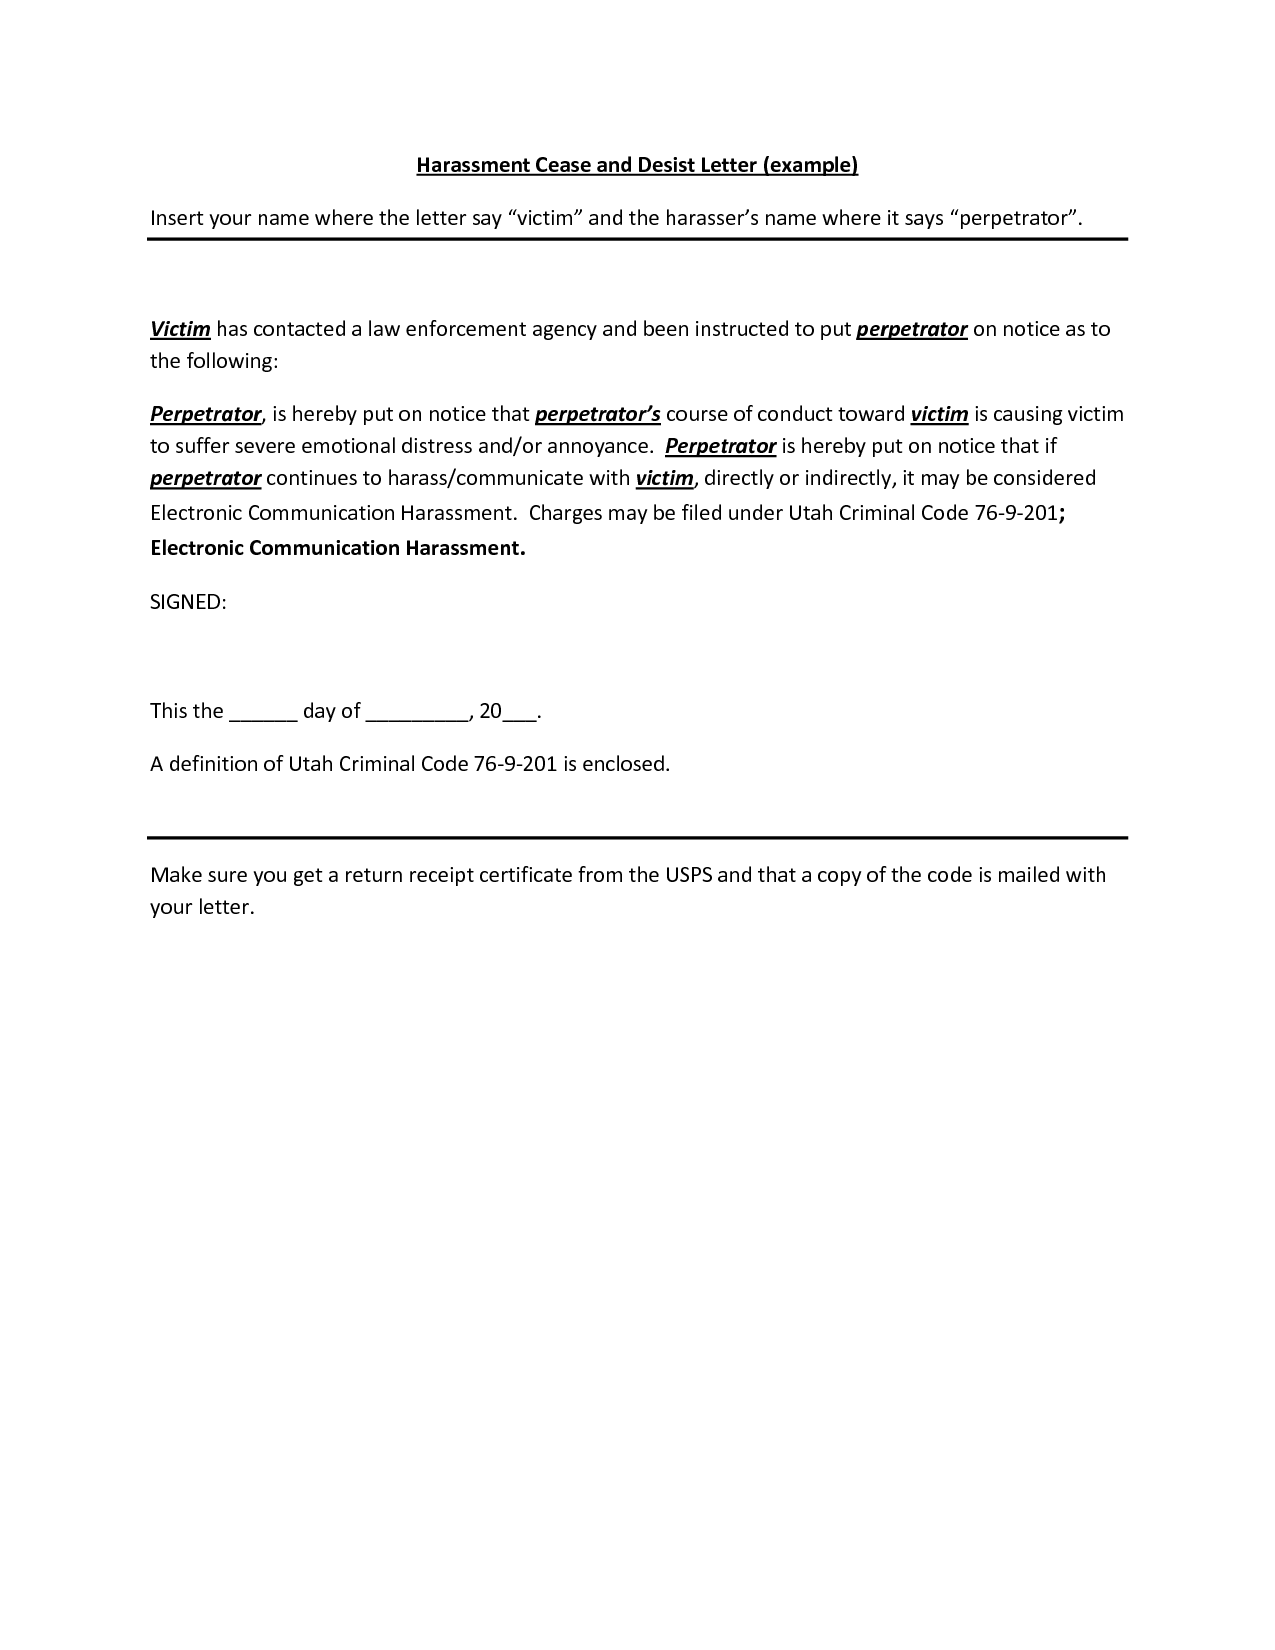 Cease And Desist Form Letter Template Gplusnick  Home Design Idea